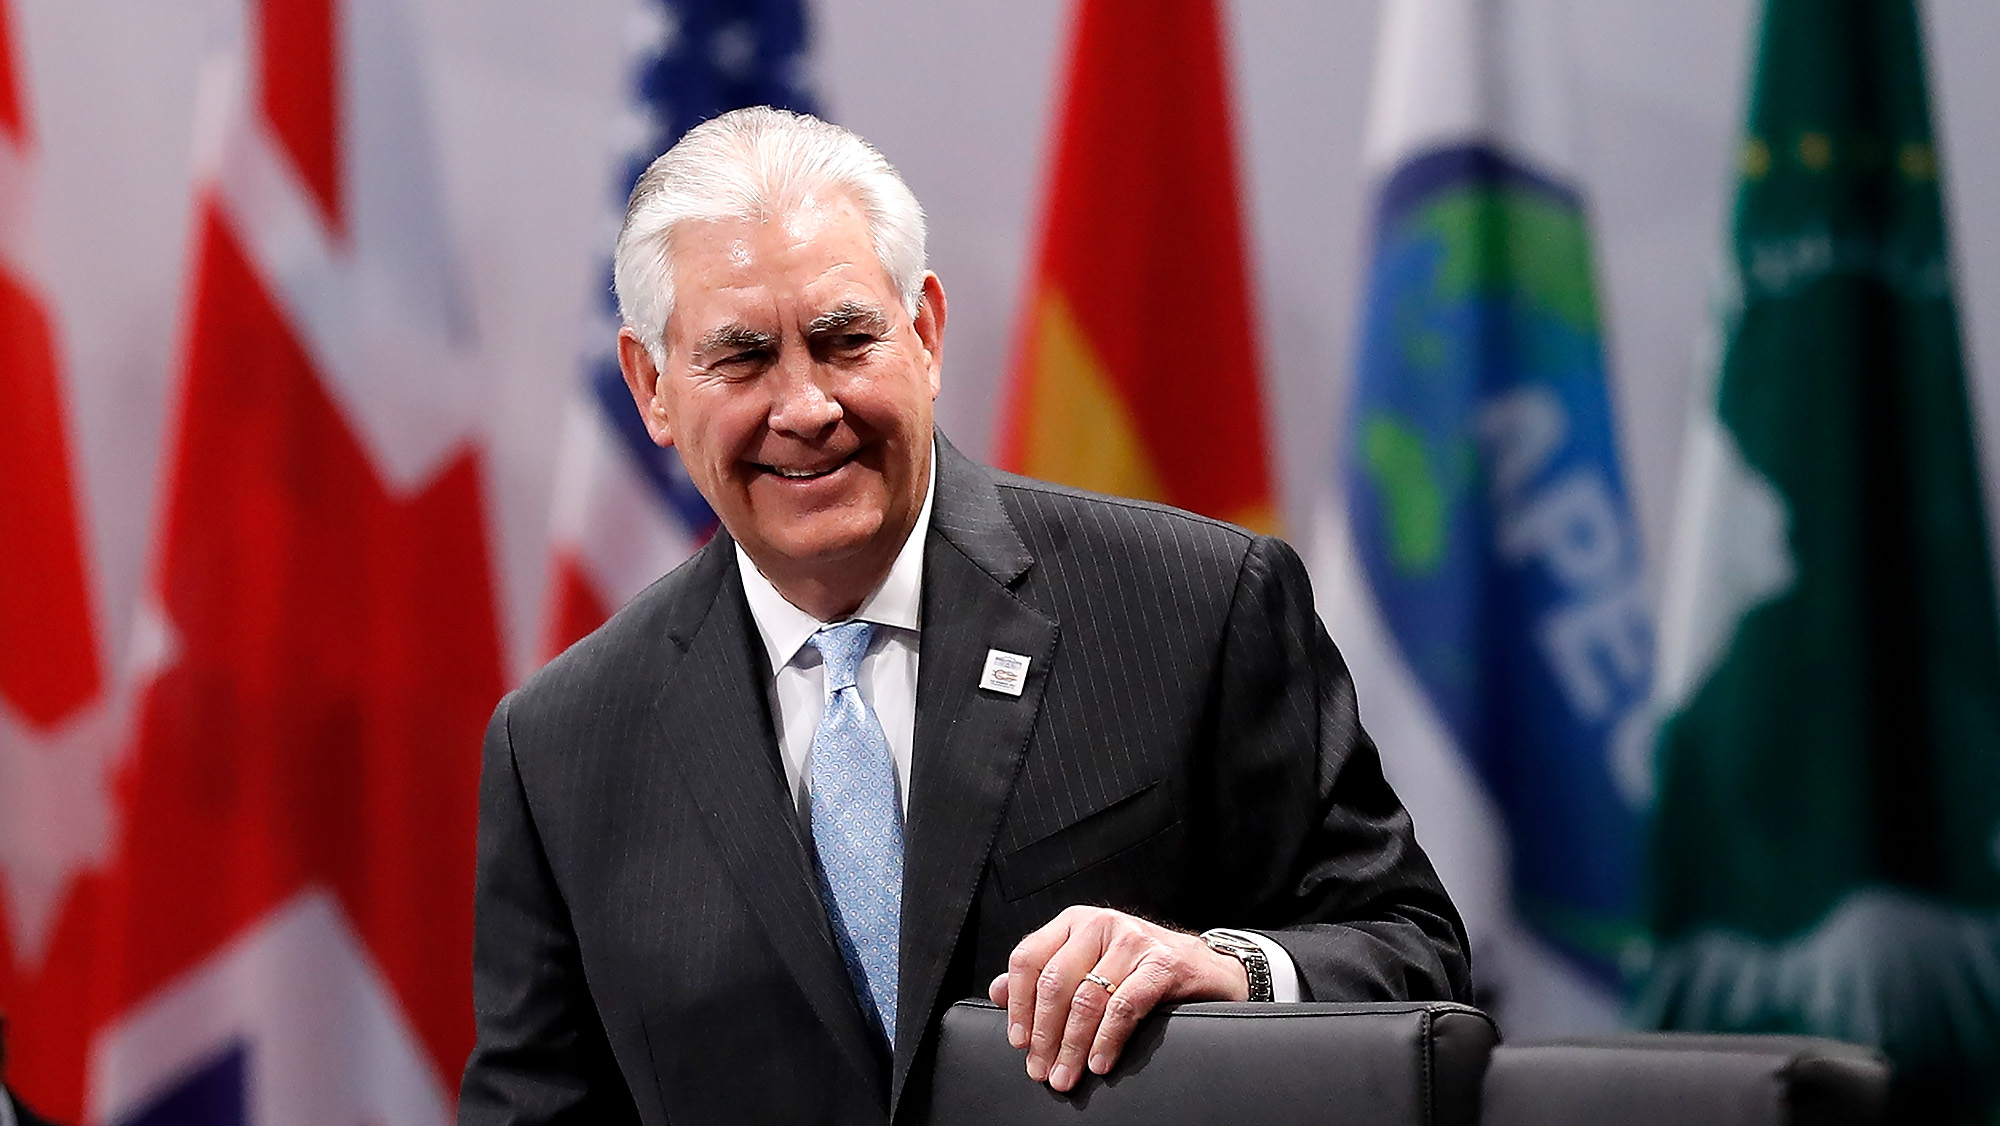 U.S. Secretary of State Rex Tillerson attends the opening session at the World Conference Center Bonn (WCCB) on February 16, 2017 in Bonn, Germany.